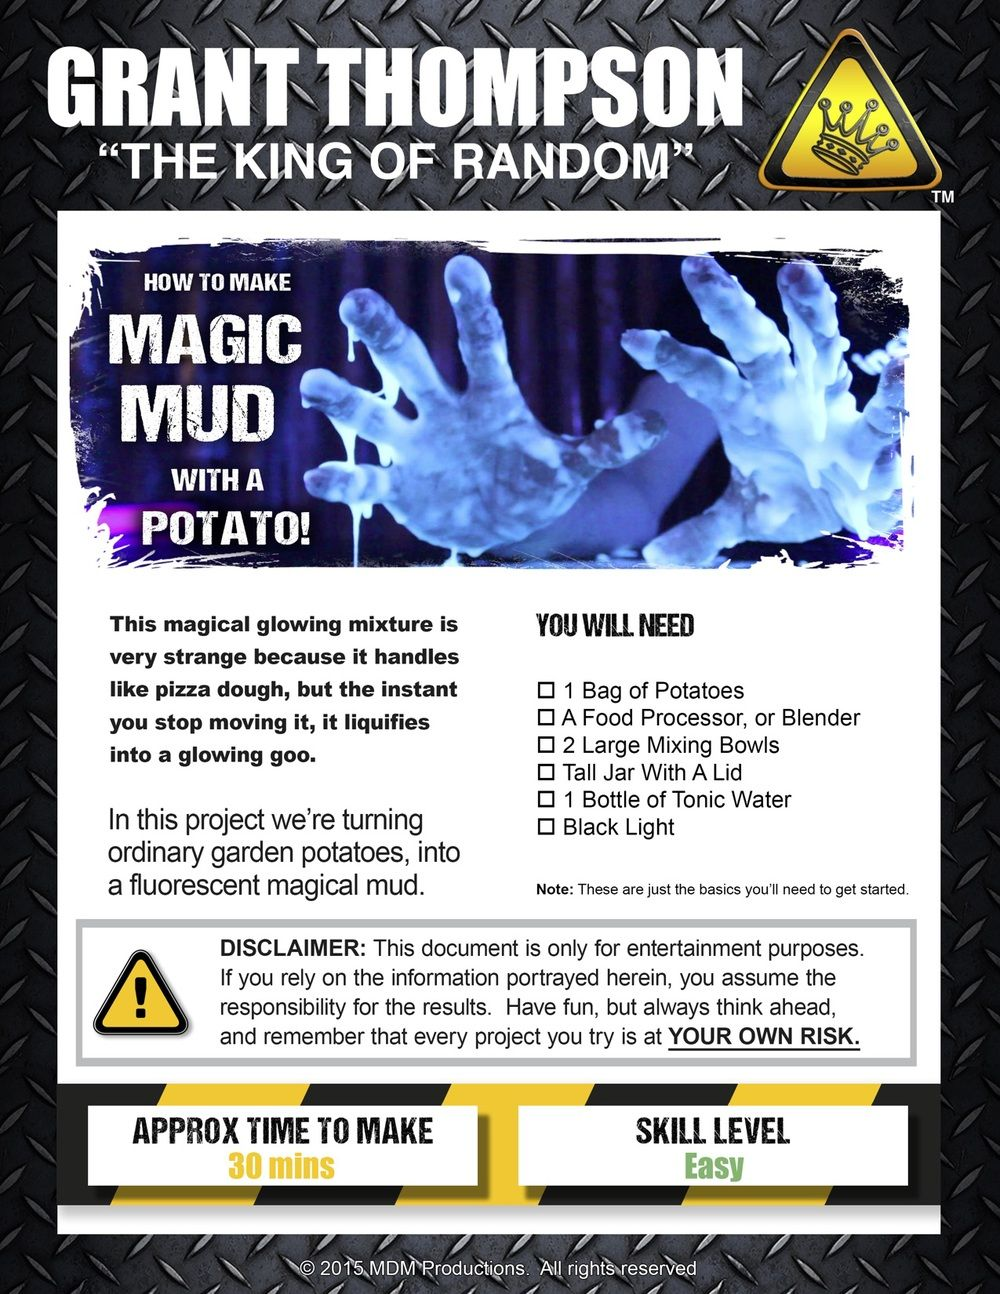 How to Make Magic Mud recommend